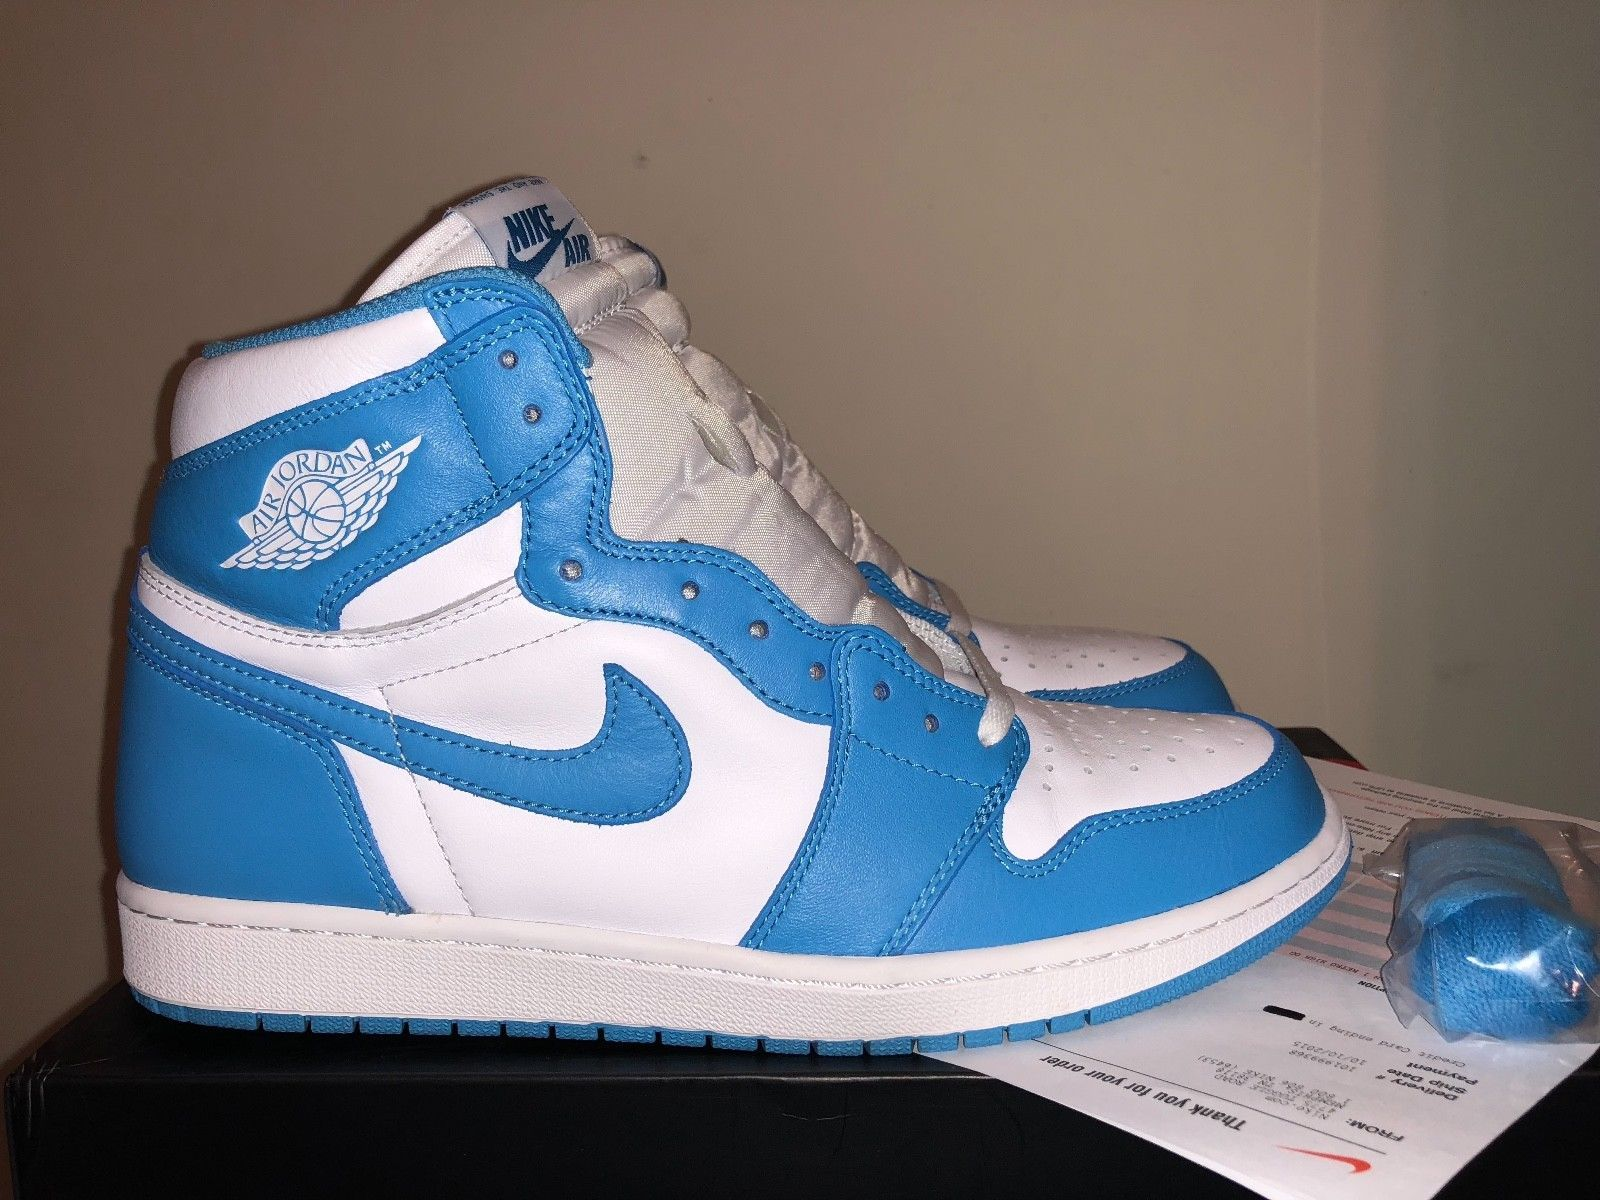 2015 Nike Air Jordan 1 Retro High Og Unc I Powder Blue White Men S